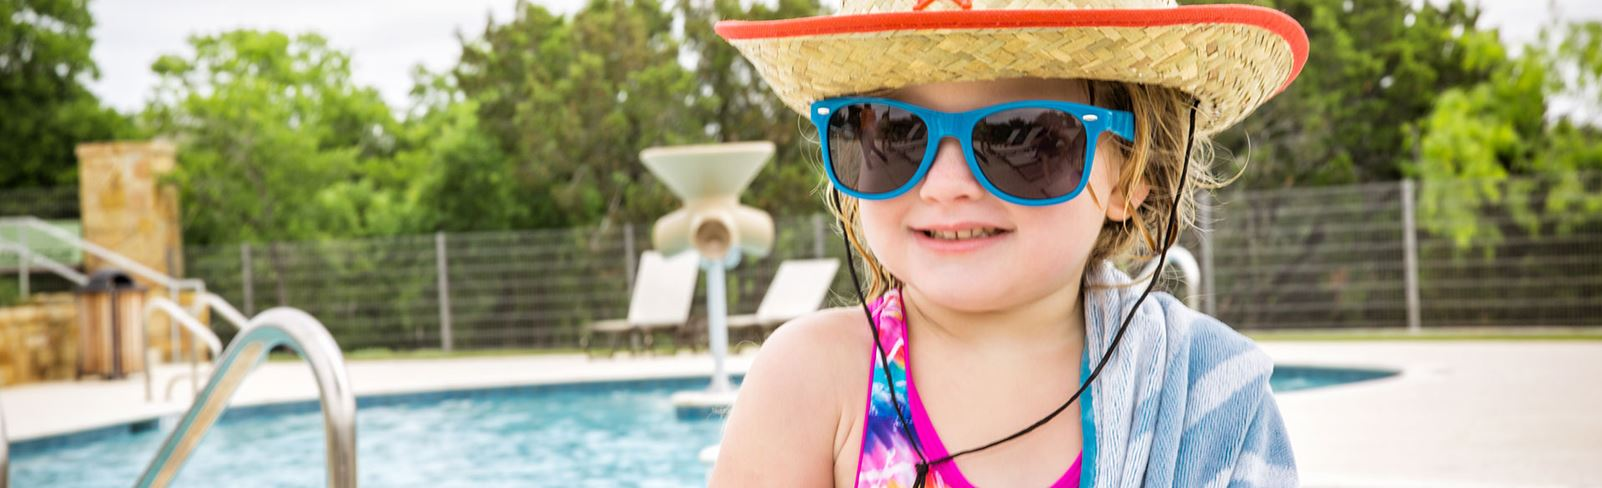 Rancho Sienna little girl at Sienna House pool